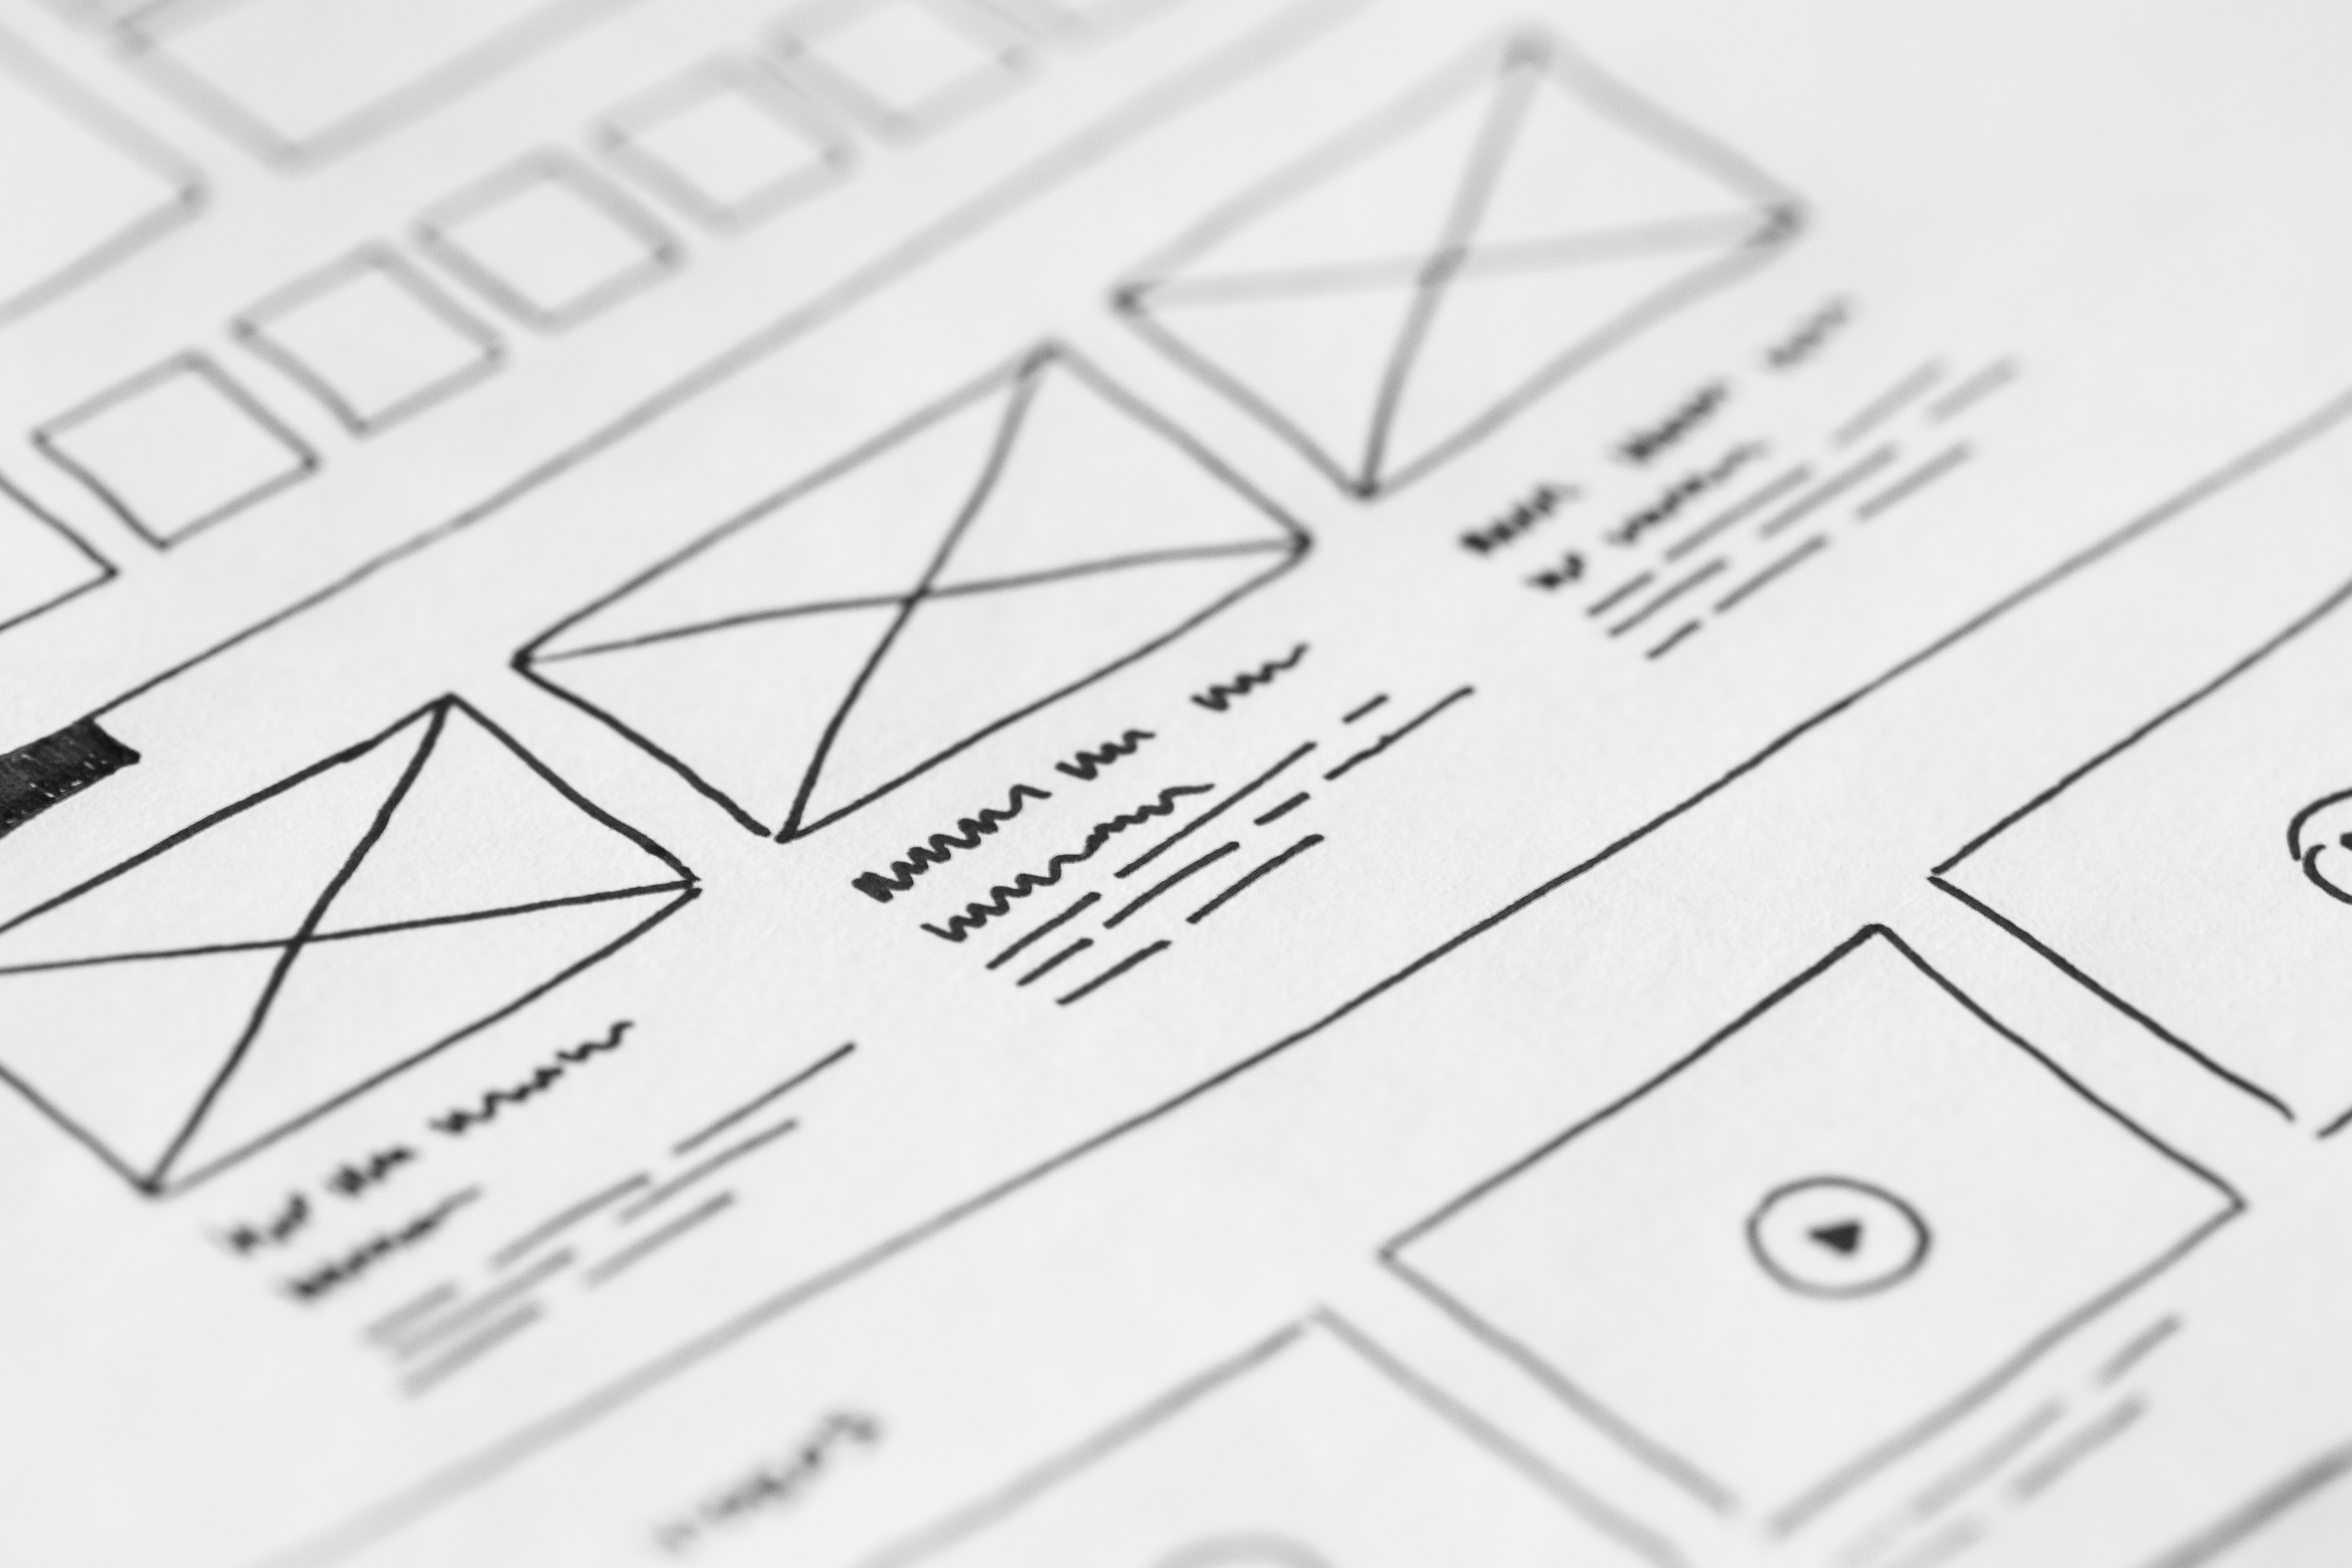 produce solution wireframes design rapidxp